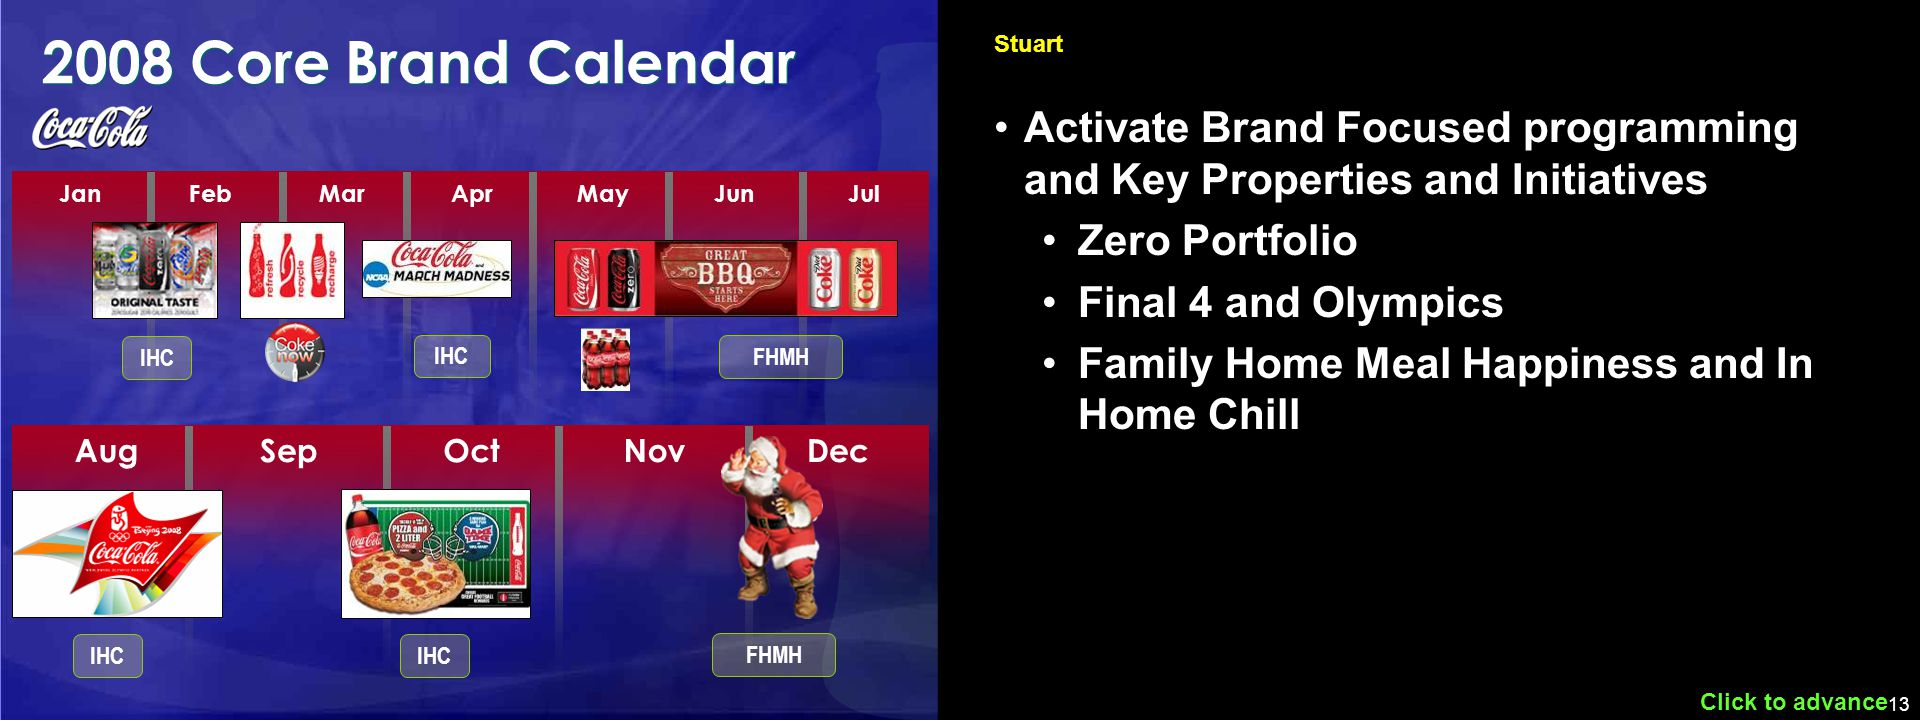 13 JanFebMarAprMayJunJul 2008 Core Brand Calendar Click to advance Stuart AugSepOctNovDec IHC FHMH IHC FHMH Activate Brand Focused programming and Key Properties and Initiatives Zero Portfolio Final 4 and Olympics Family Home Meal Happiness and In Home Chill